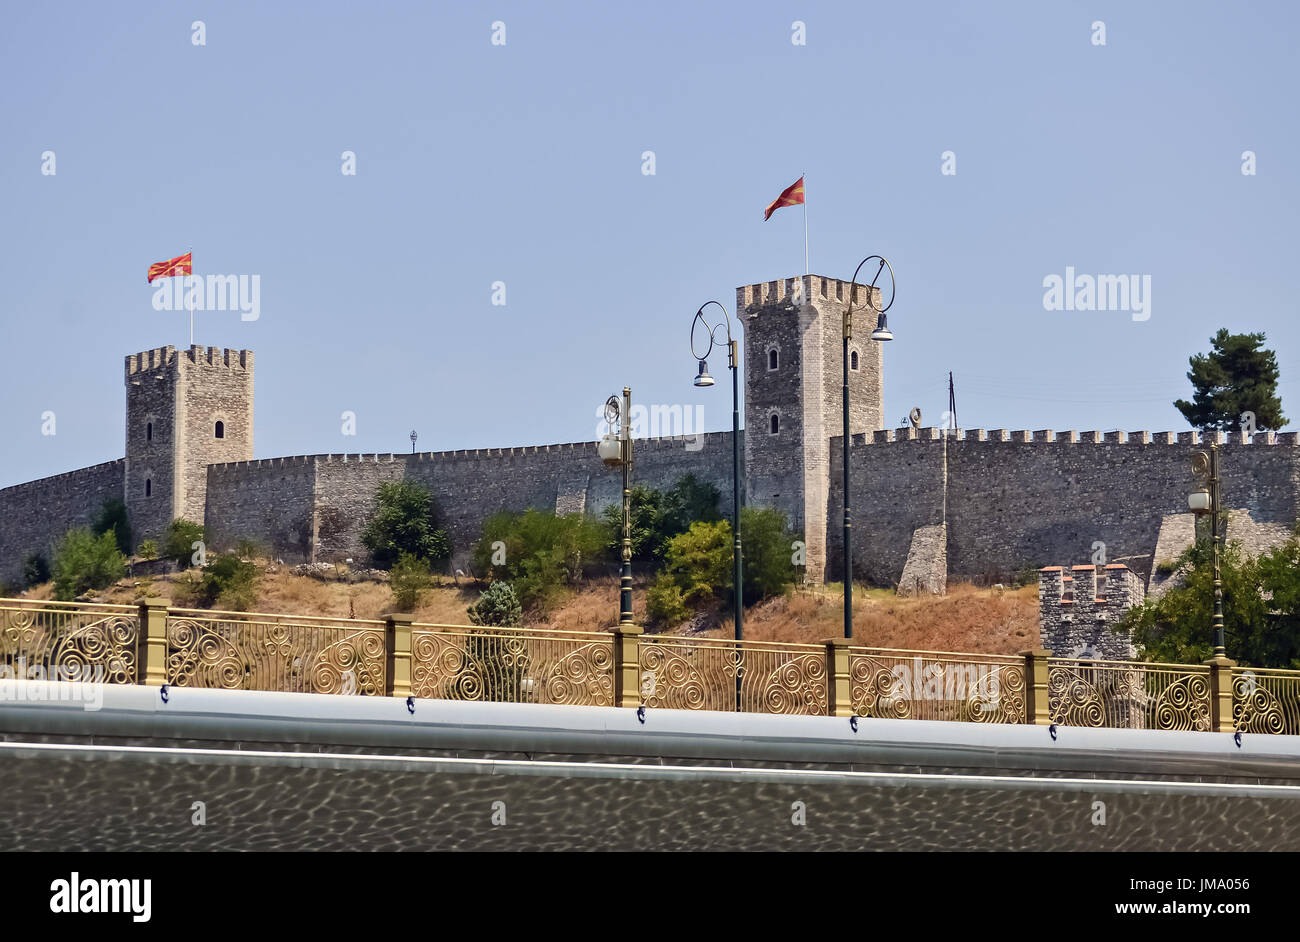 Fortress in Skopje dating from the time of the Ottoman empire - Stock Image